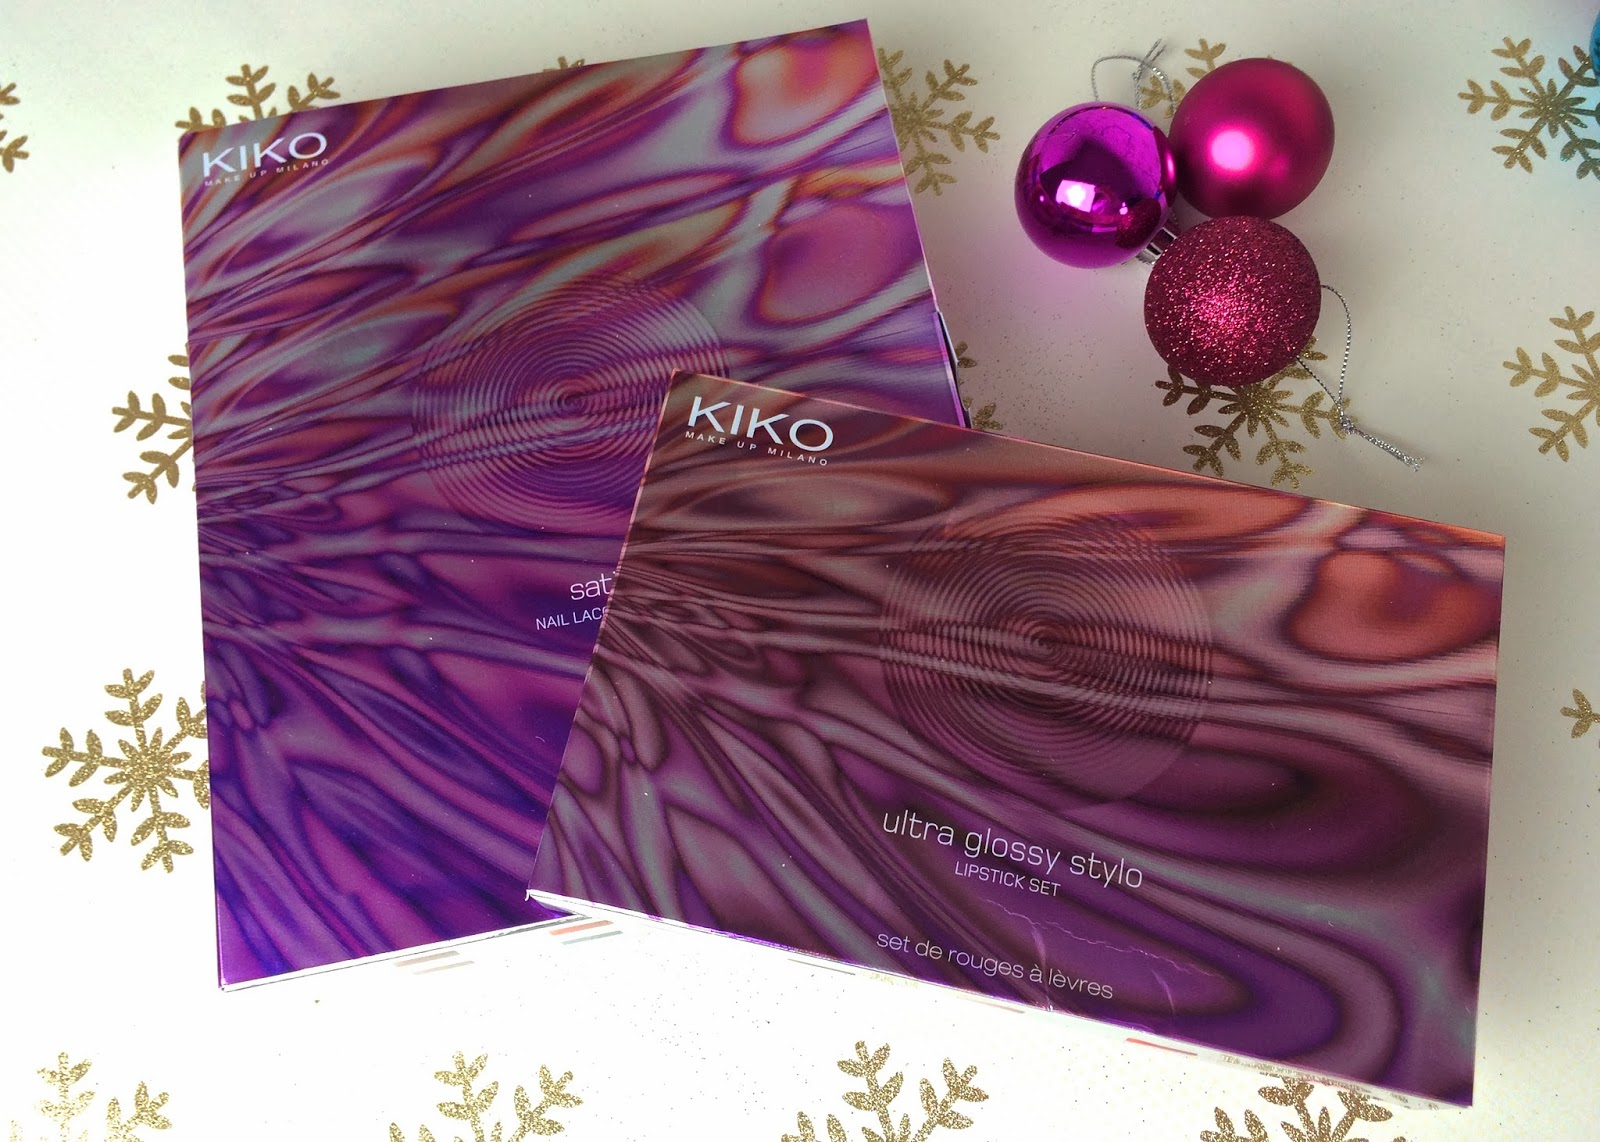 KIKO digital emotion holiday gift sets review and swatches